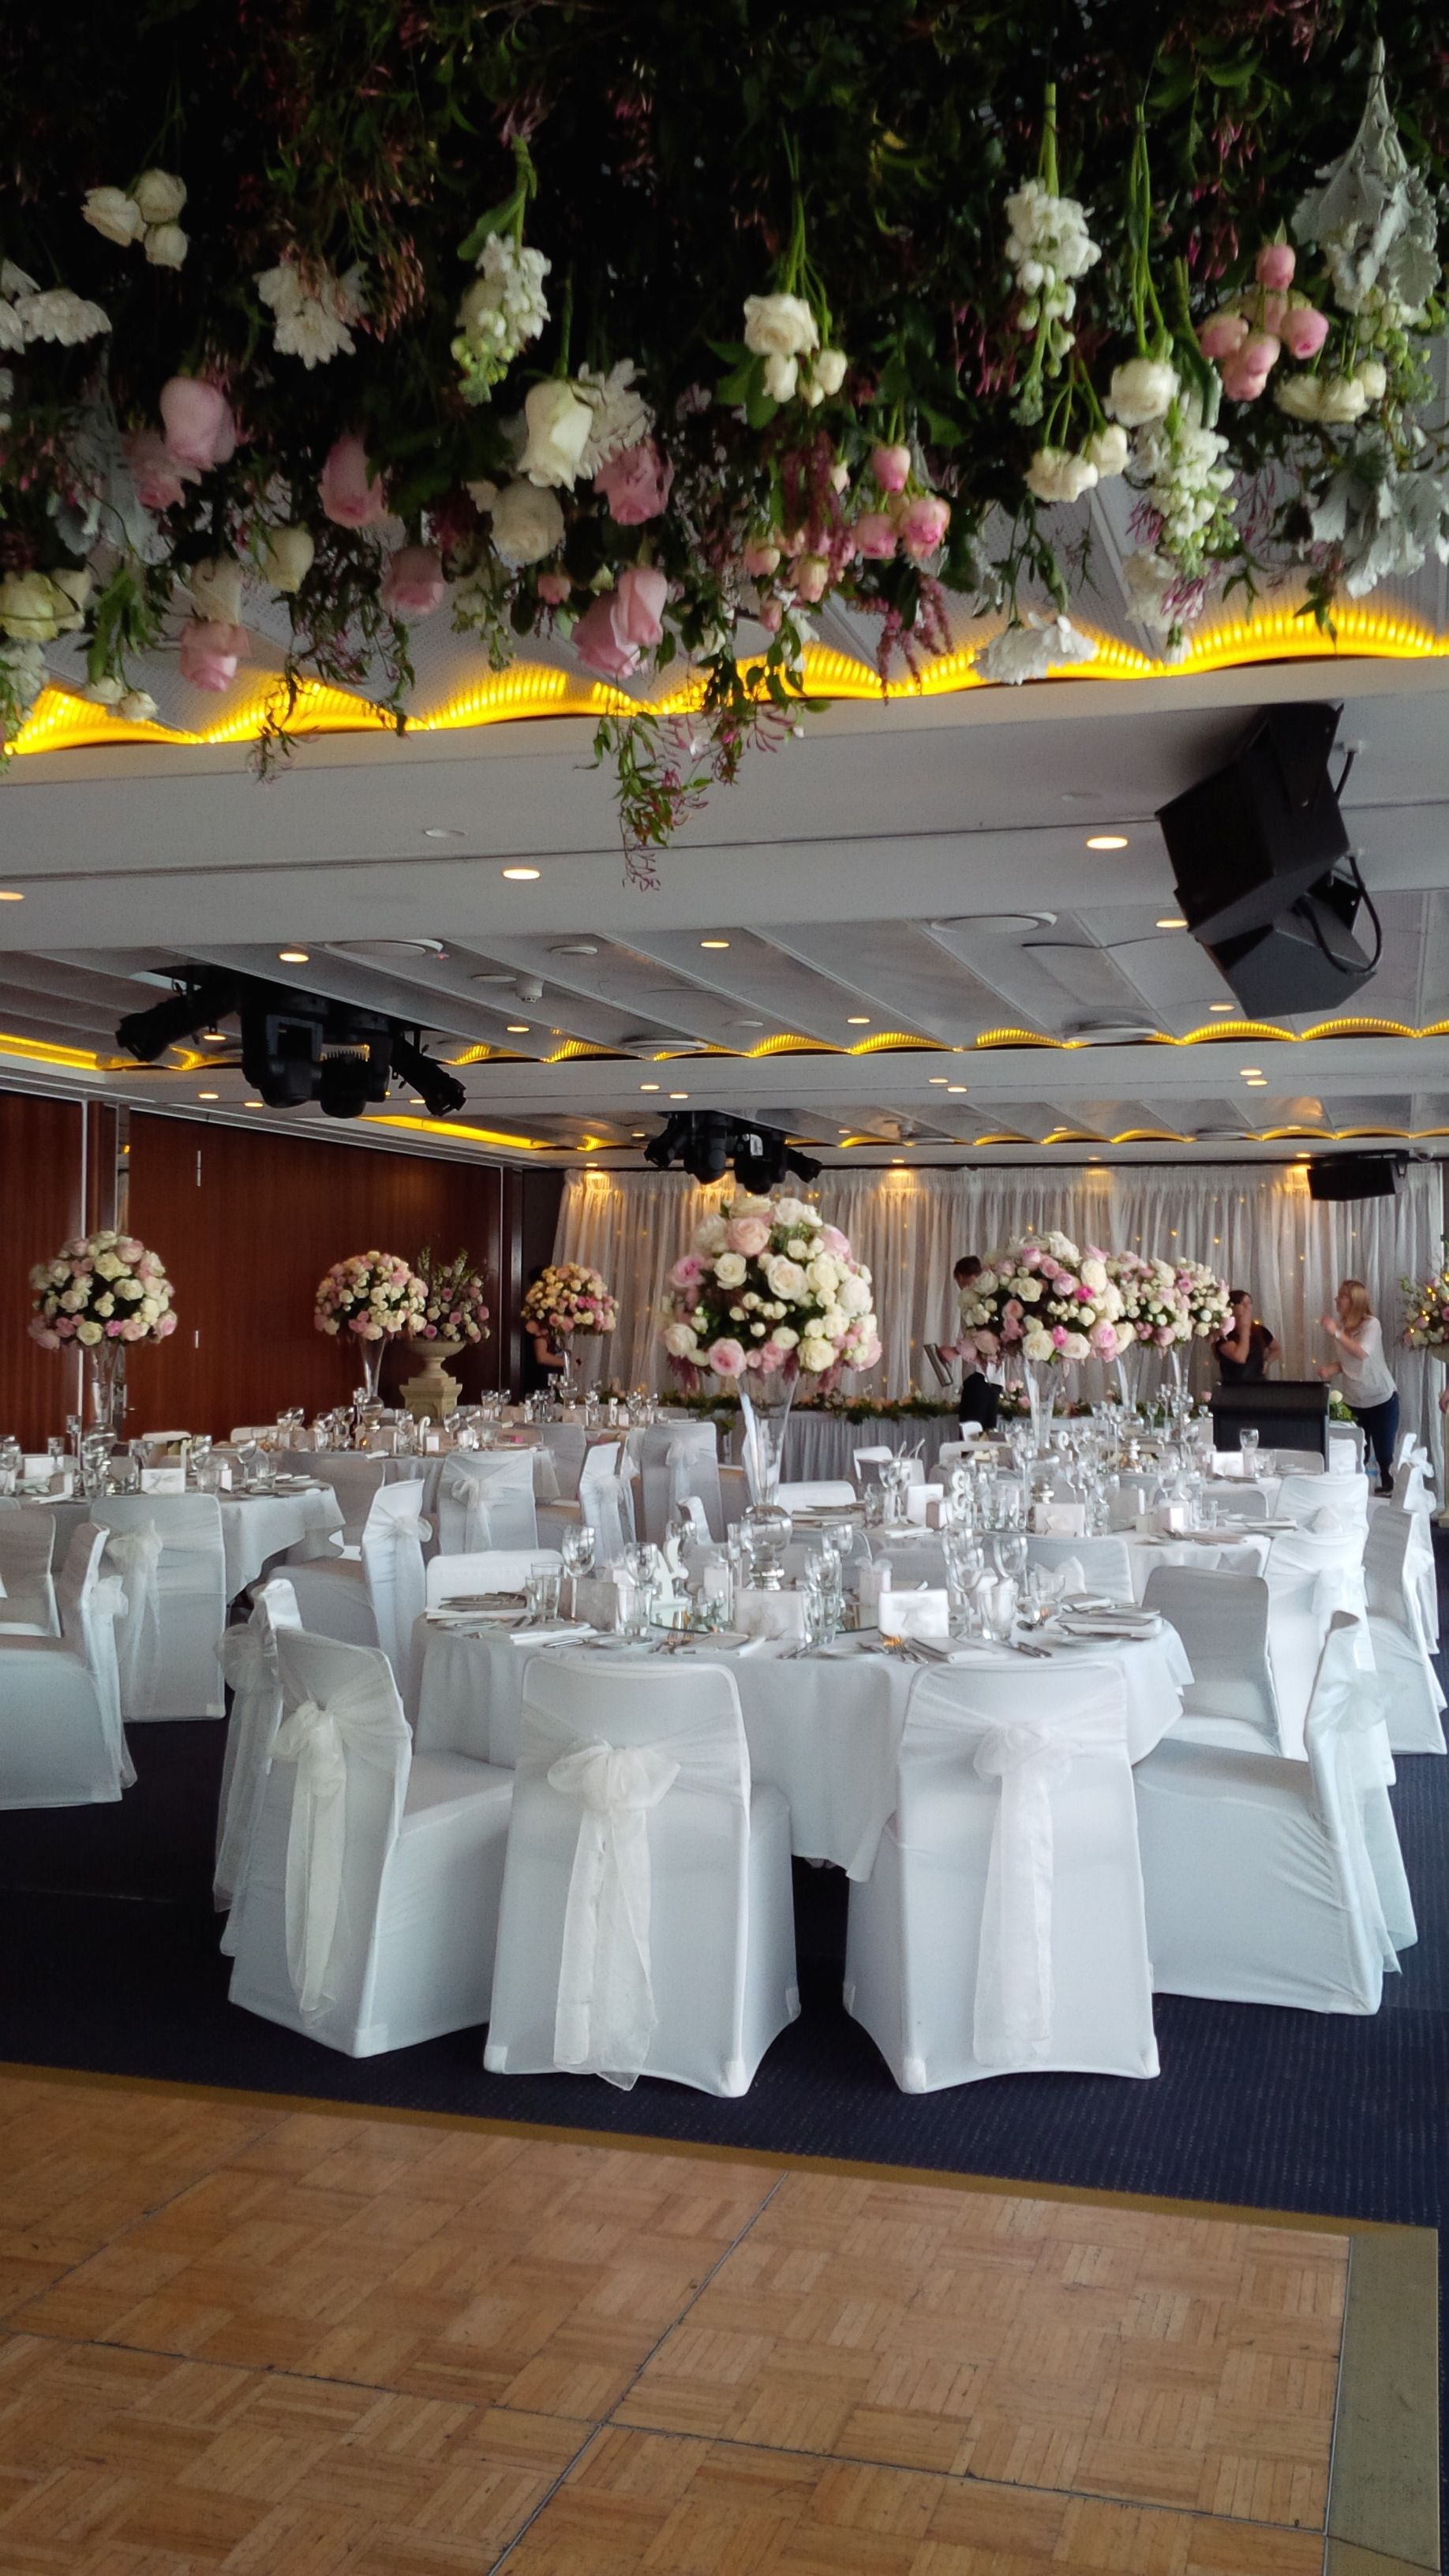 Gorgeous wedding merewether surf house floral centrepieces gorgeous wedding merewether surf house floral centrepieces floral chandelier arubaitofo Images